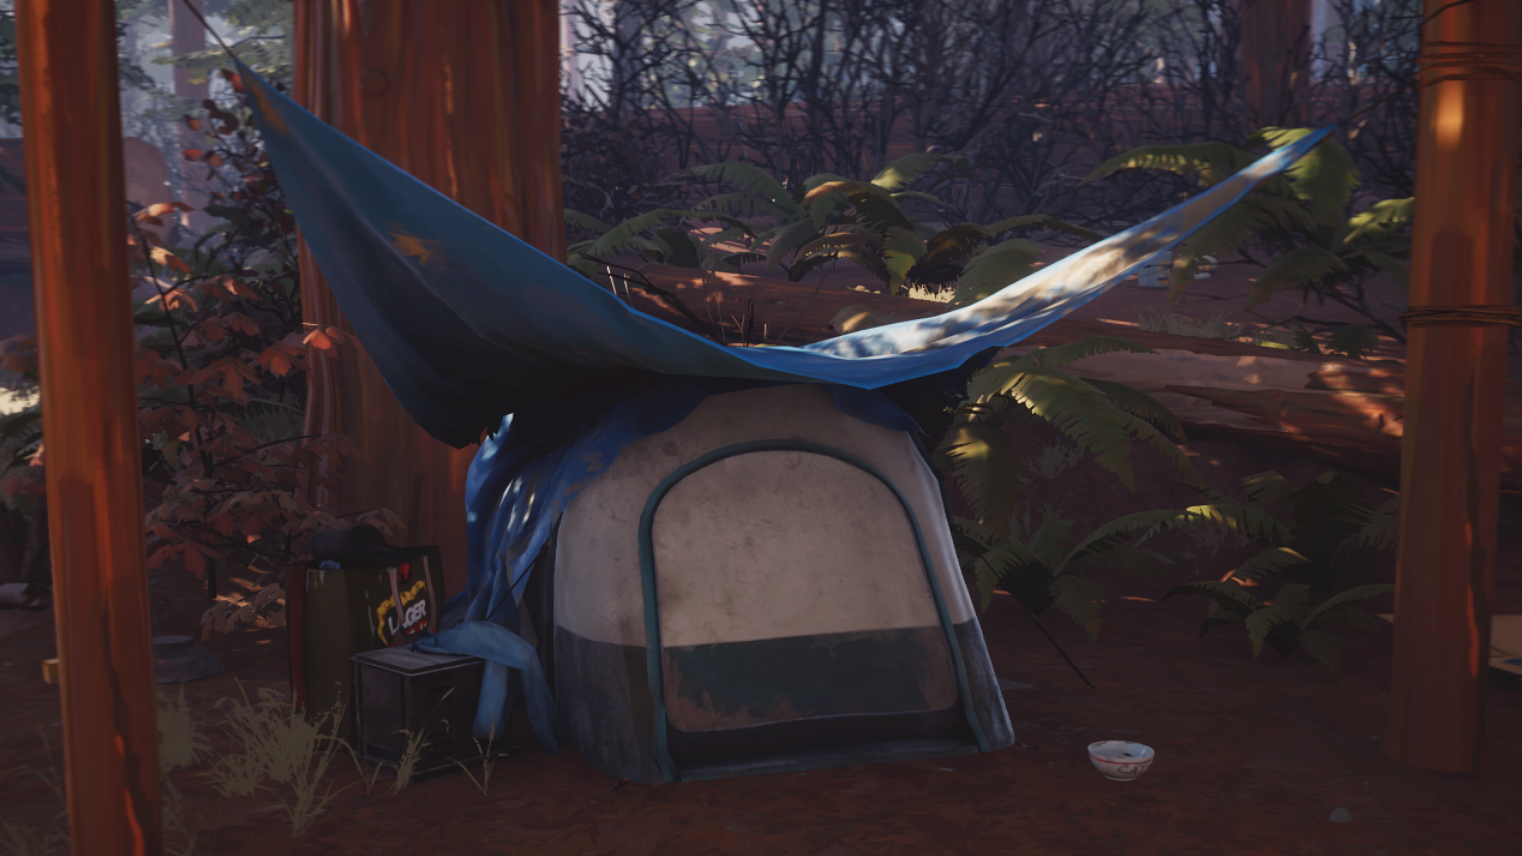 Lis2-Freecam-pennytent-outside-infobox